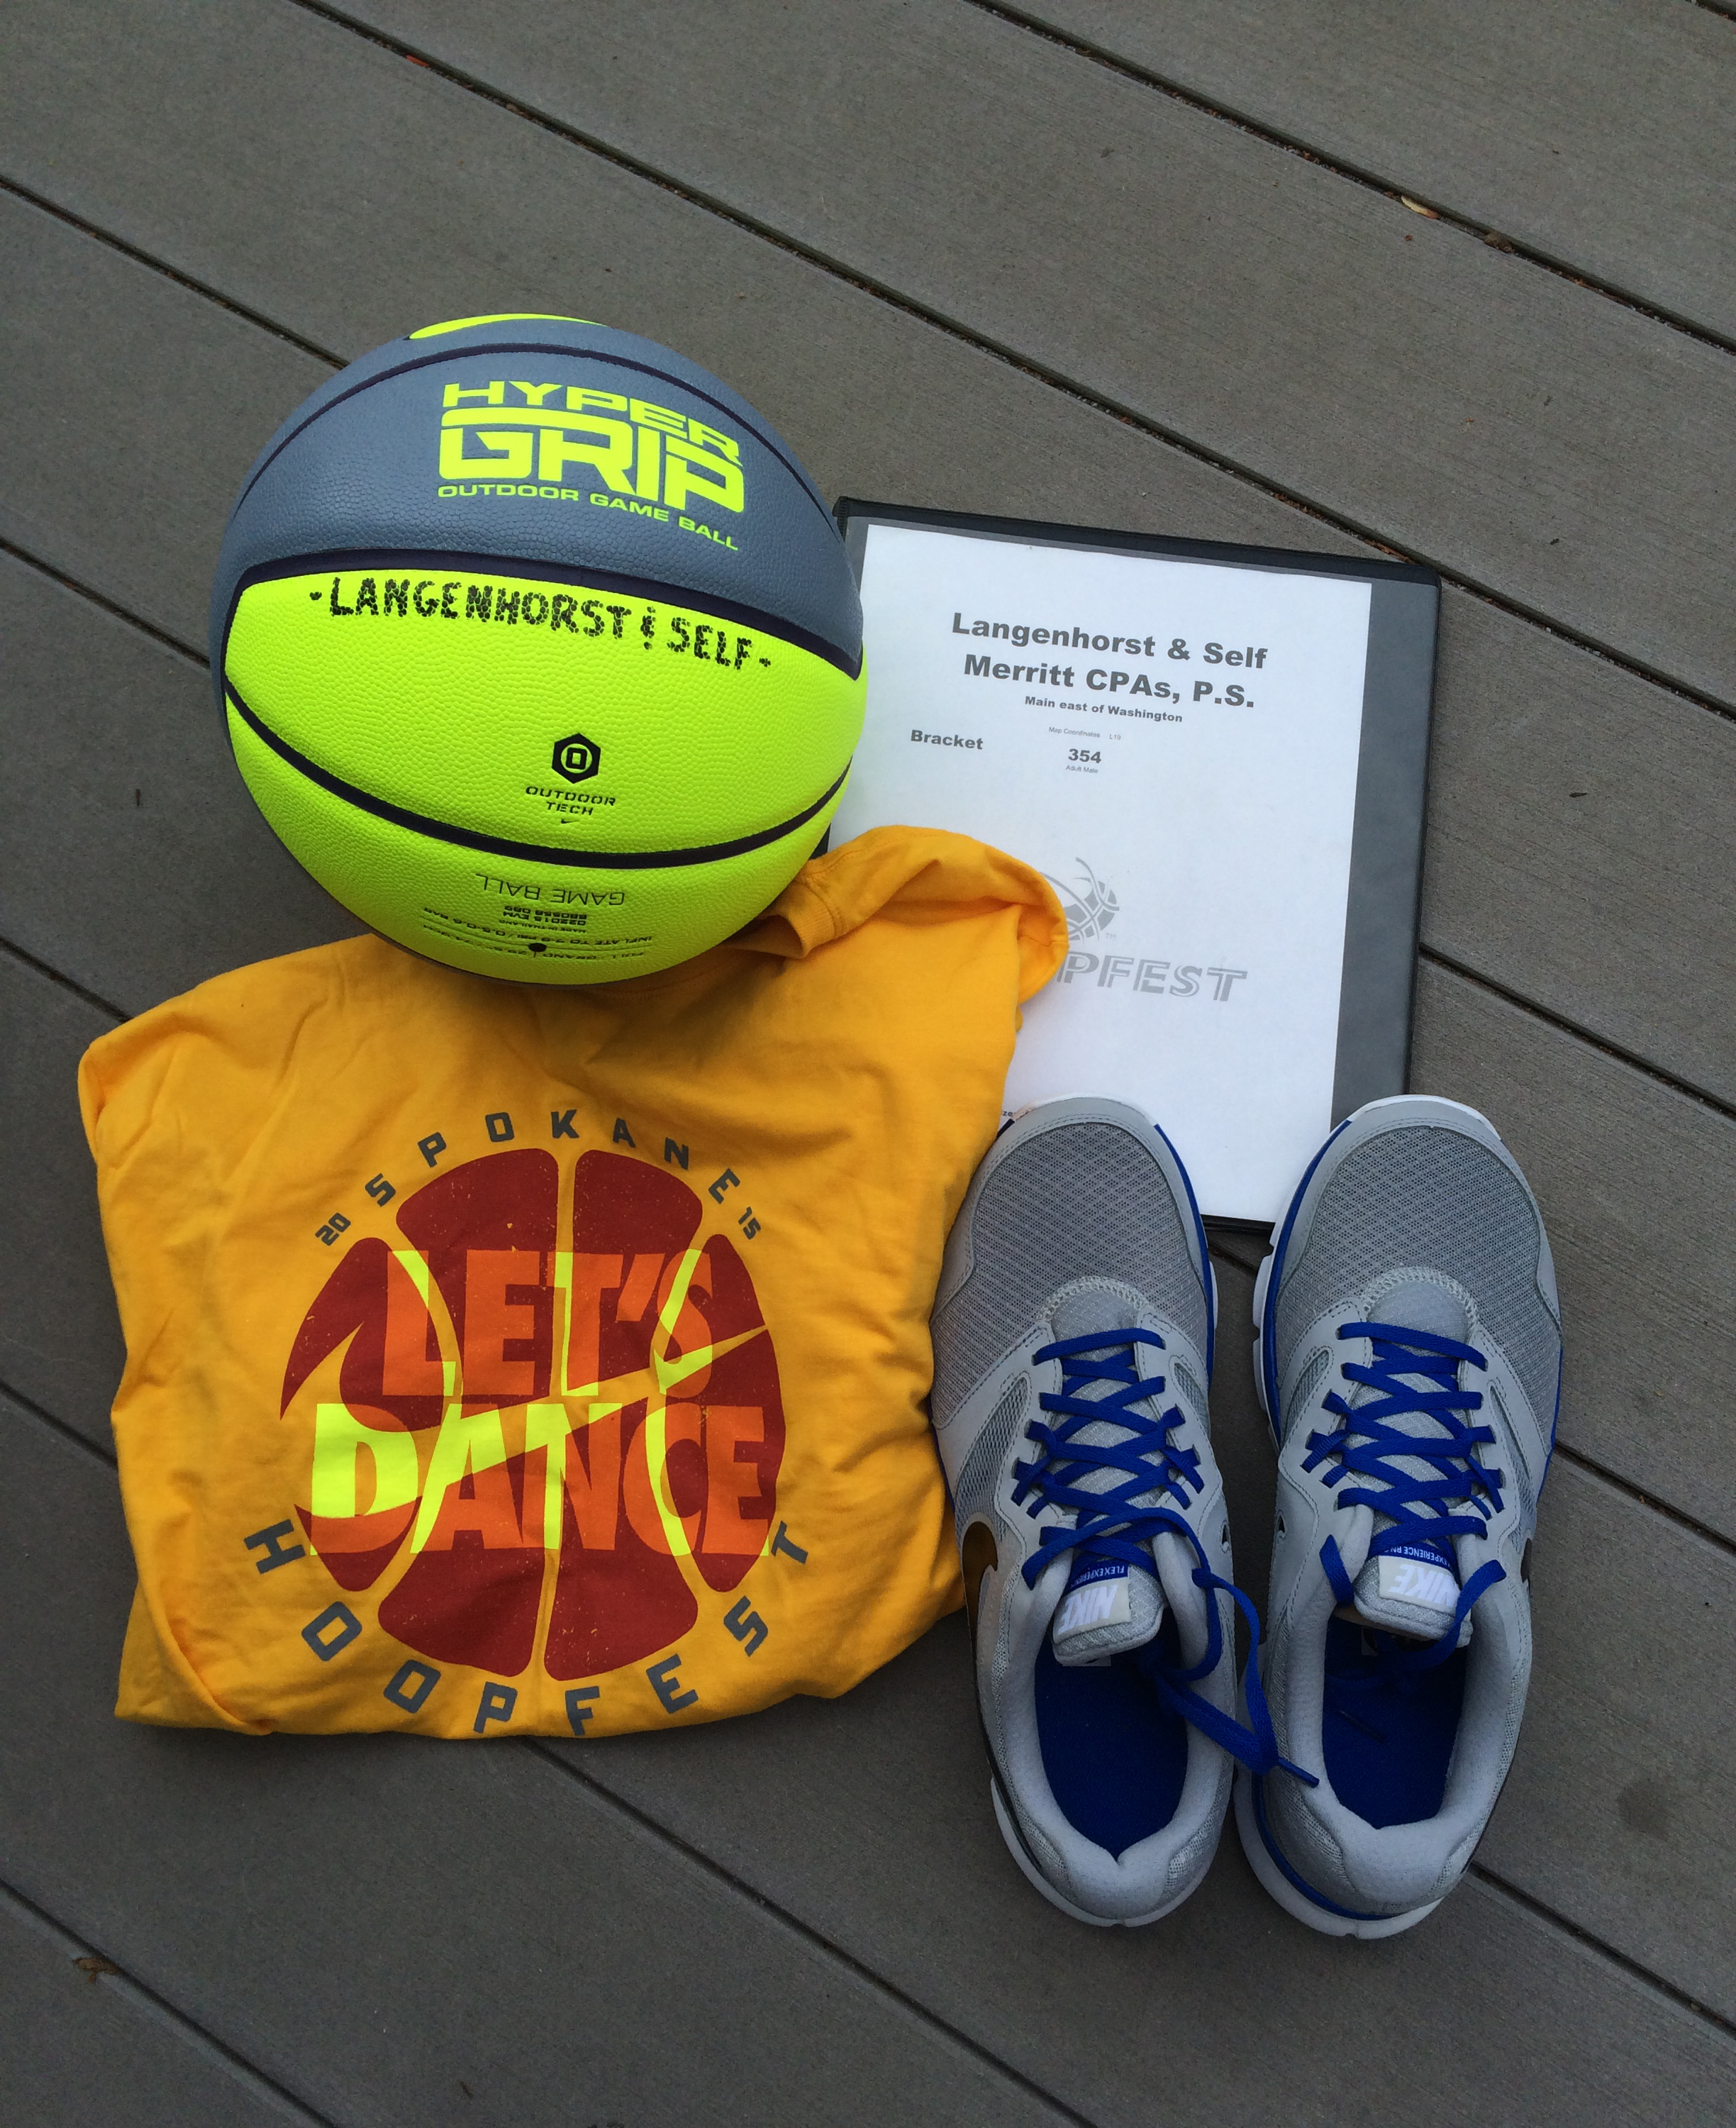 2015 Hoopfest court monitor t-shirt with my bracket book, the ball, and shoes.